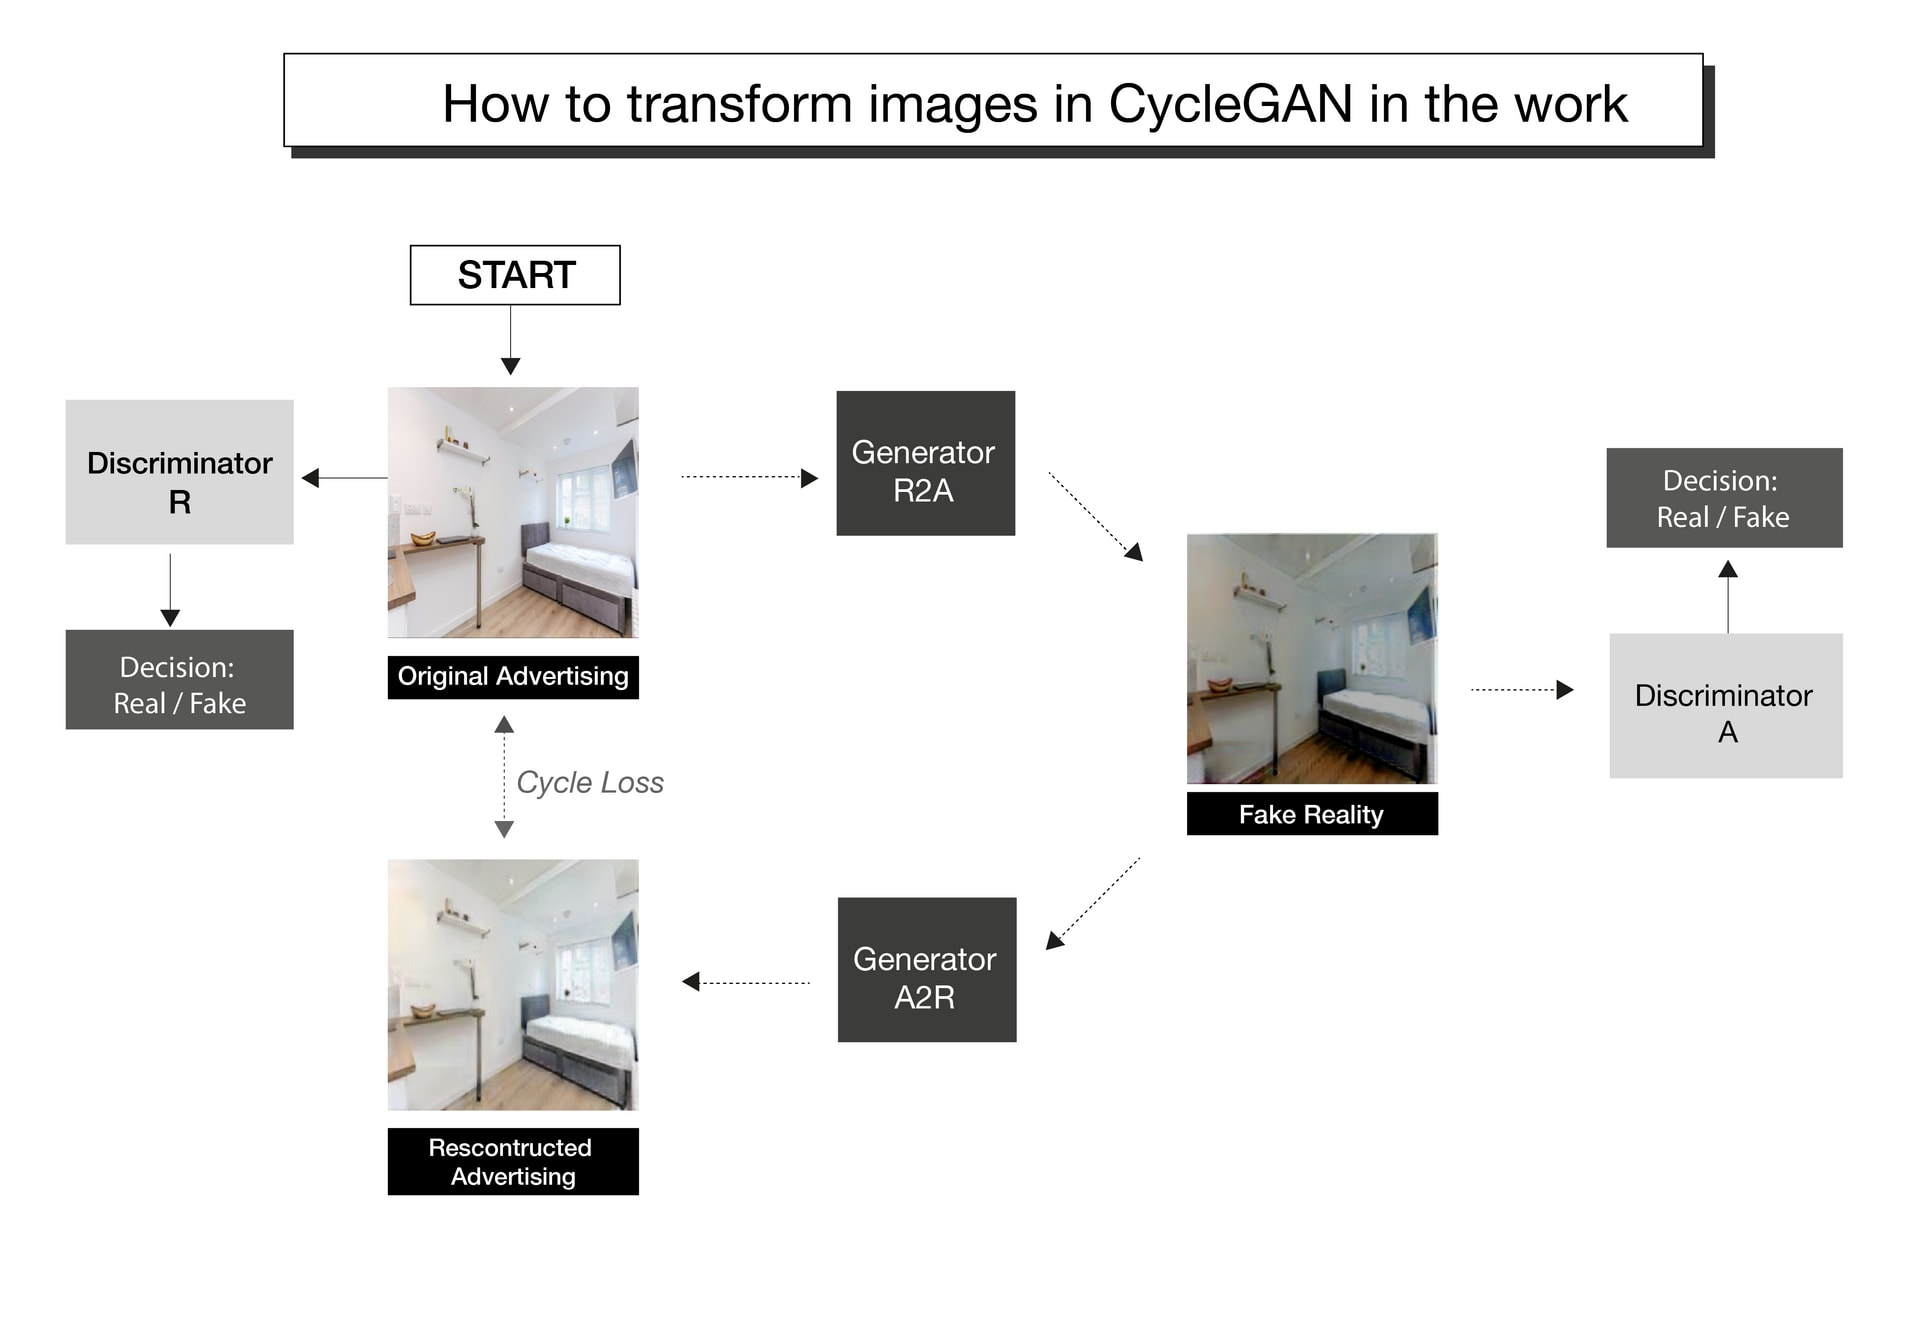 The process in CycleGAN